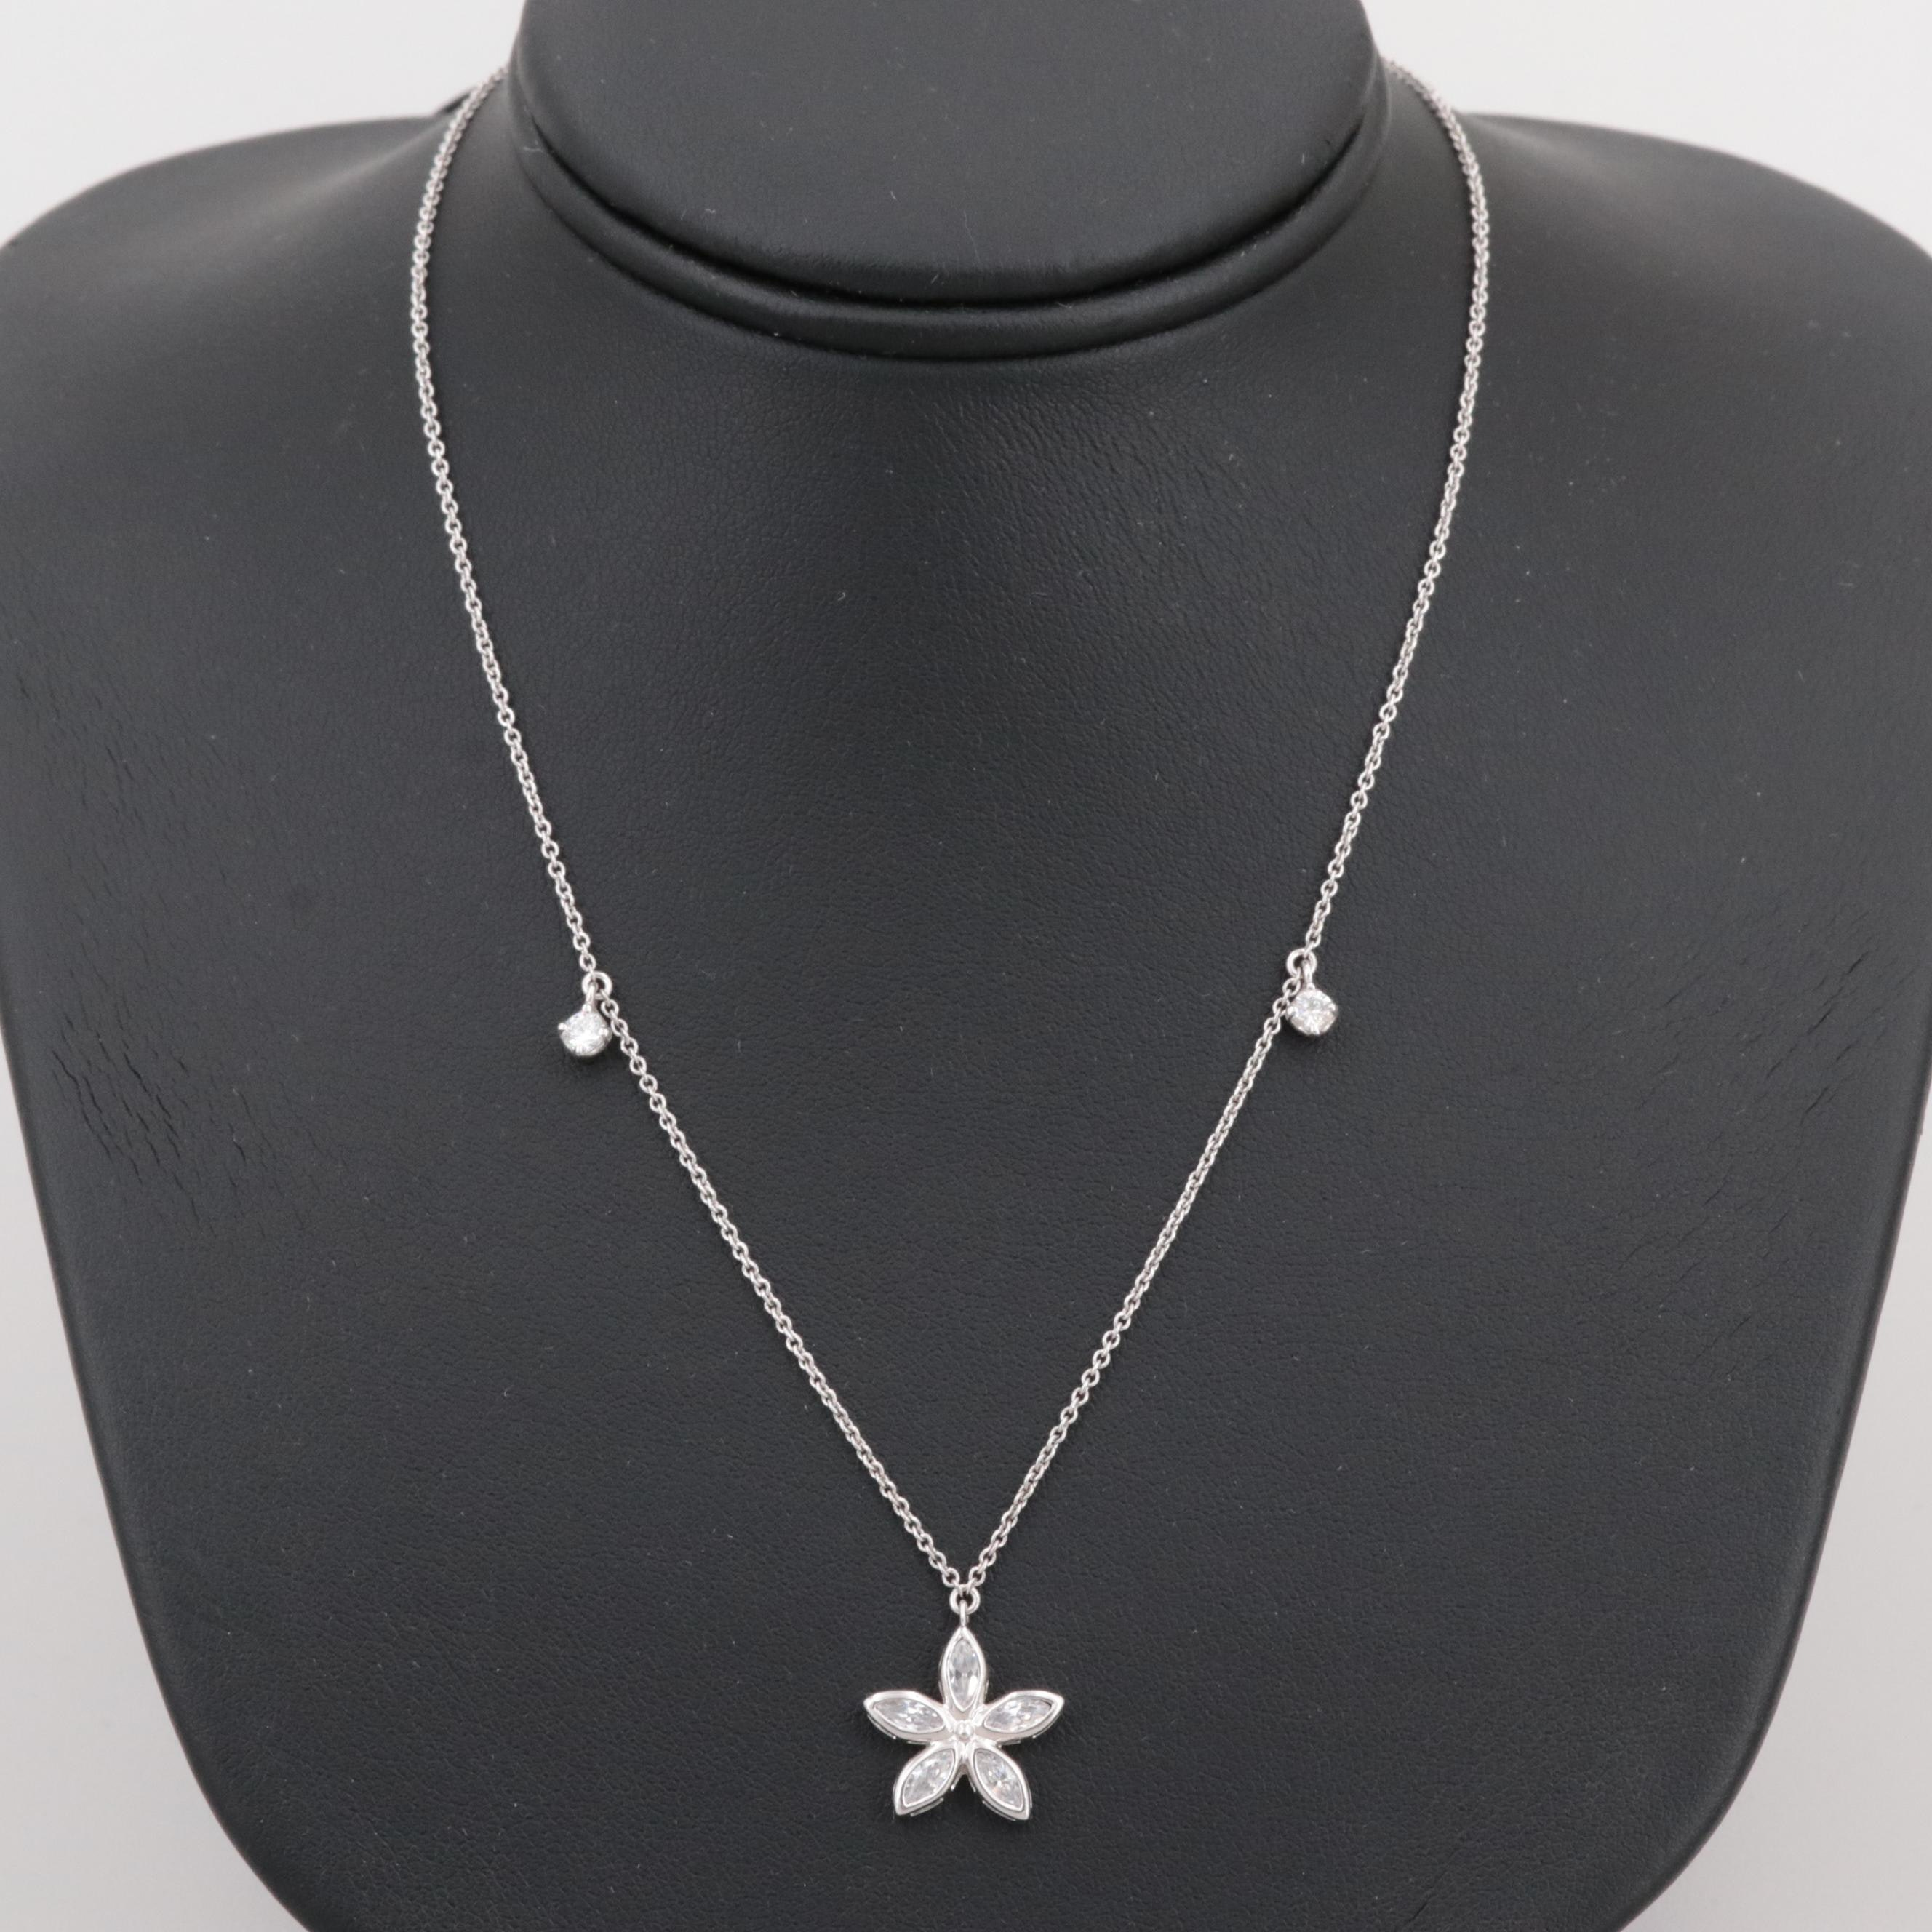 Sterling Silver Cubic Zirconia Flower Pendant with Adjustable Necklace